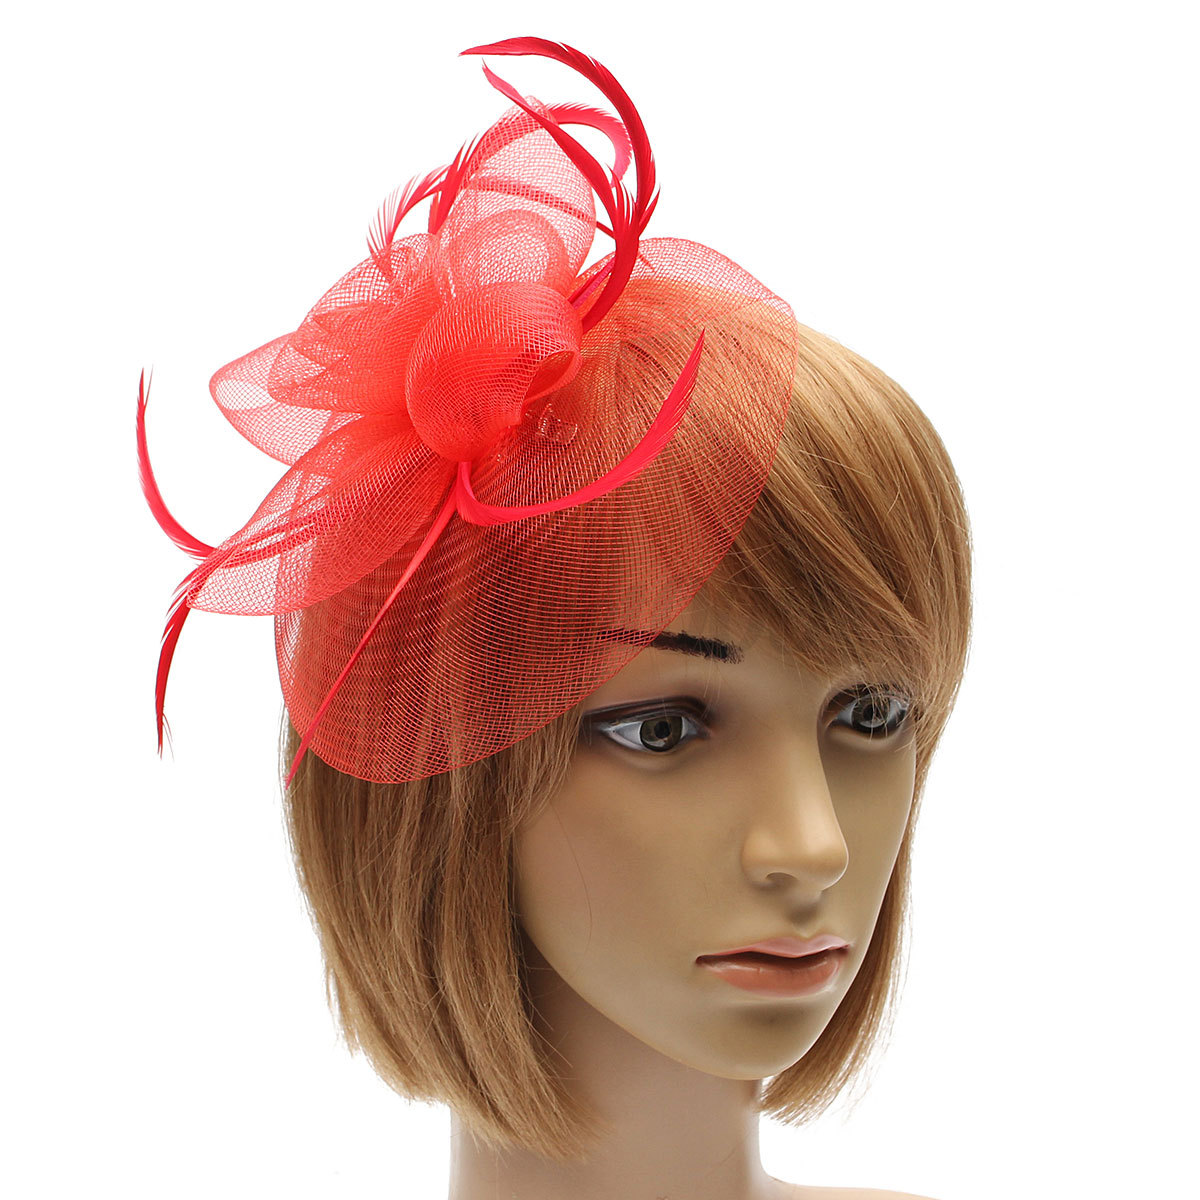 Ladies Hire Headpieces. For the Royal Ascot Races, 18thnd June , the Pick Up and Drop of is at the Royal Ascot Tennis Club (3 mins walk from the Grandstand).